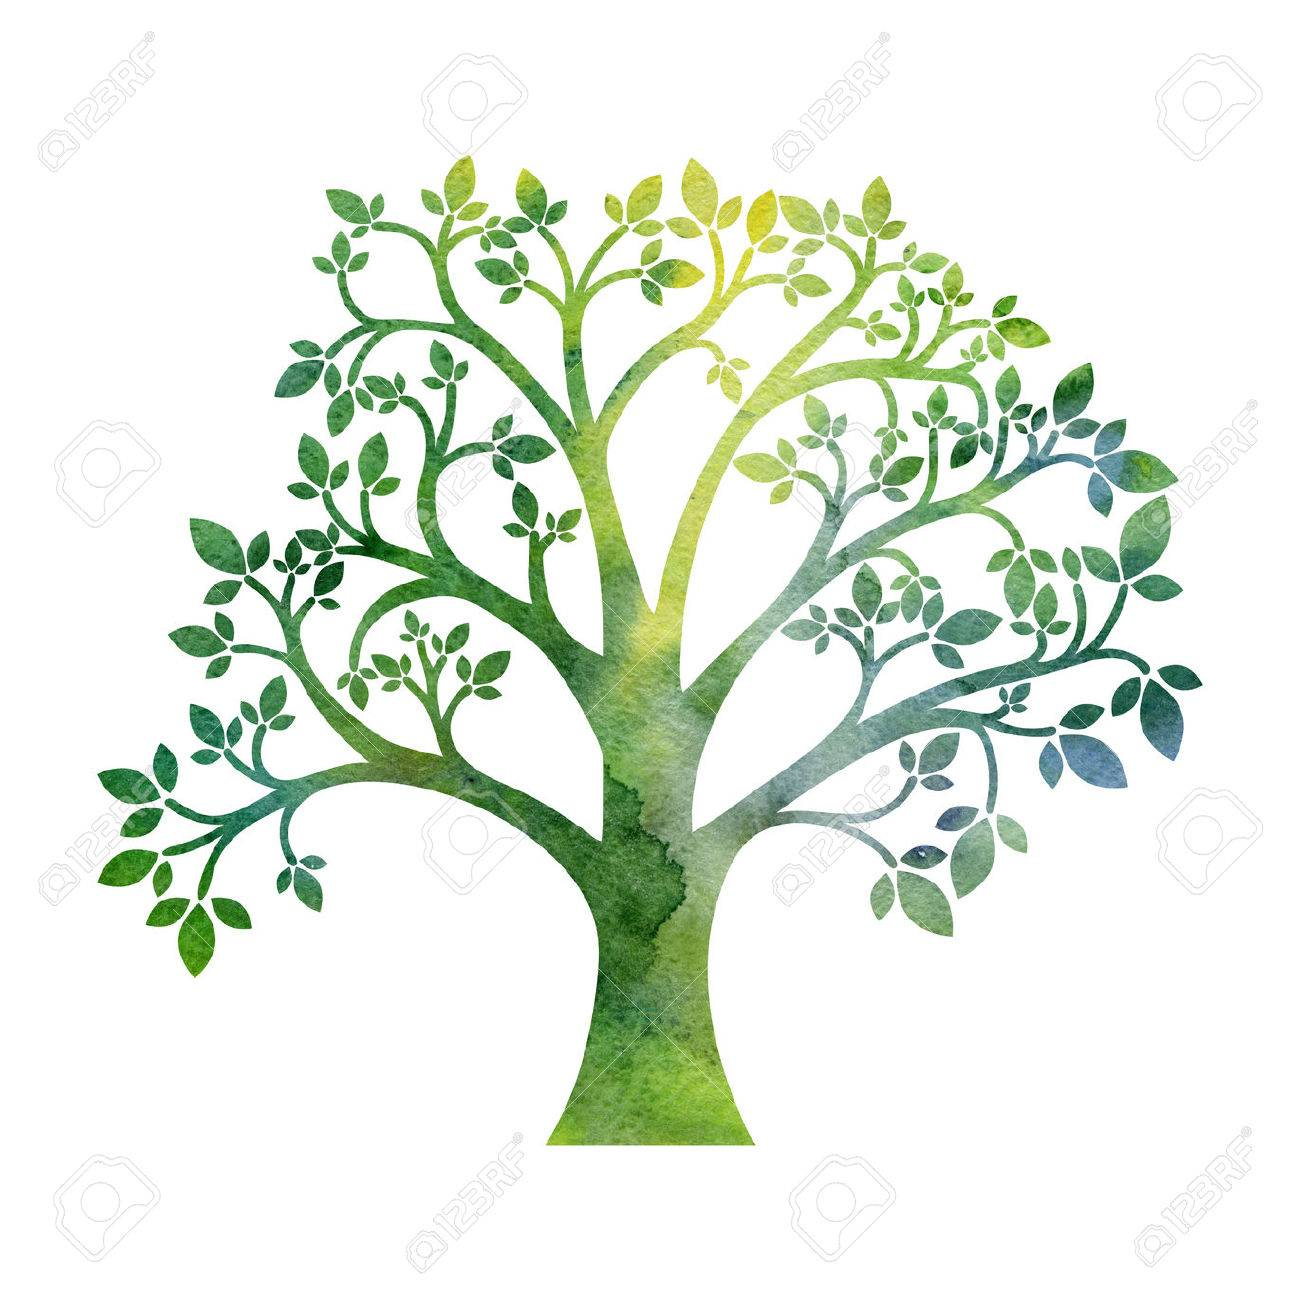 Artistic Tree Drawing at GetDrawings.com | Free for personal use ...